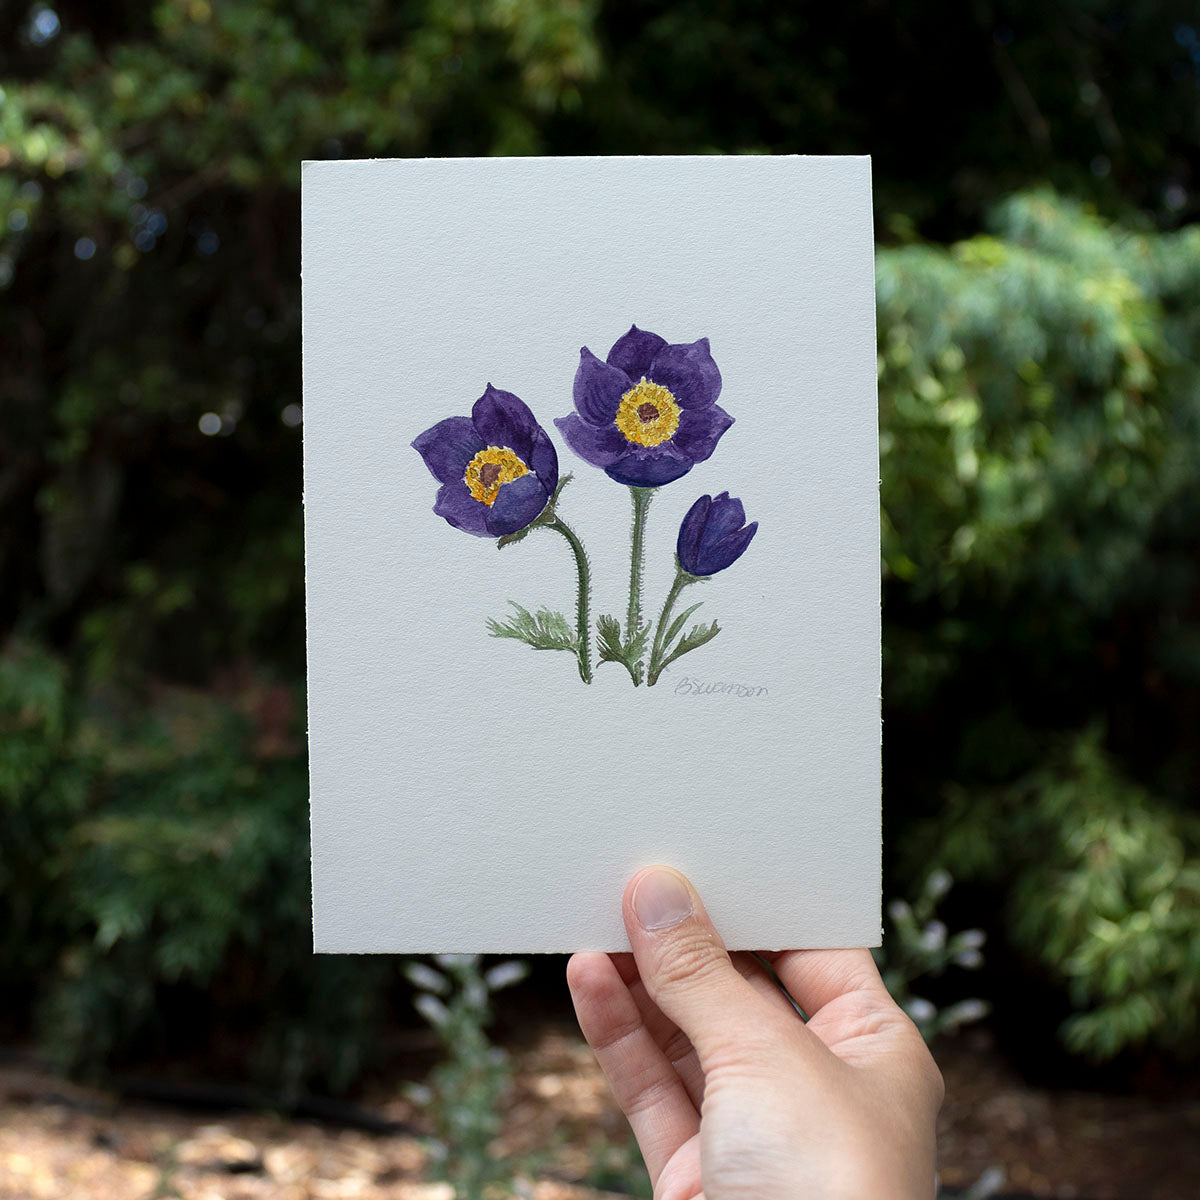 Pasqueflower Wildflower Original Watercolor Painting